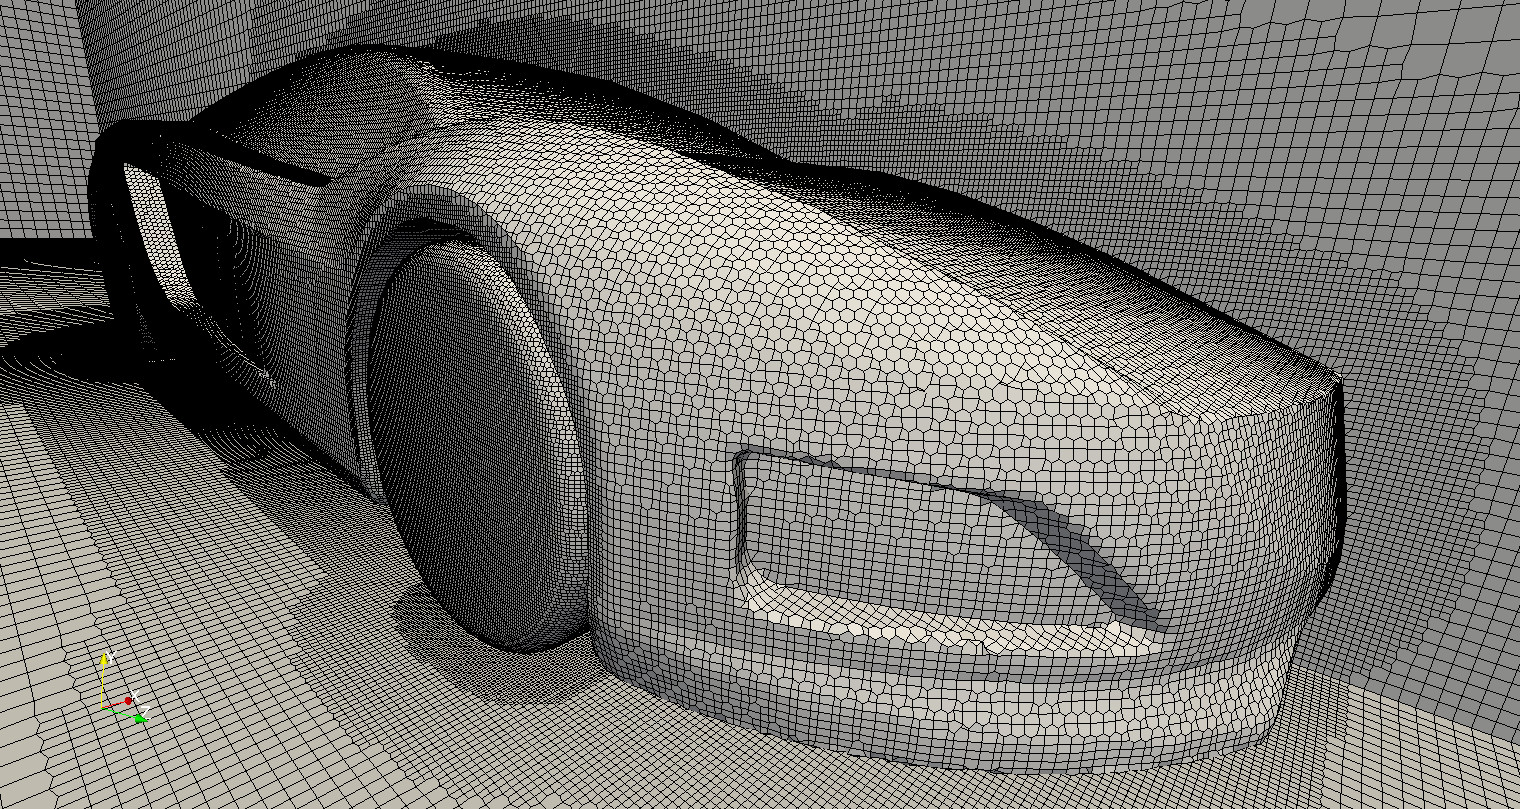 Hexahedral mesh